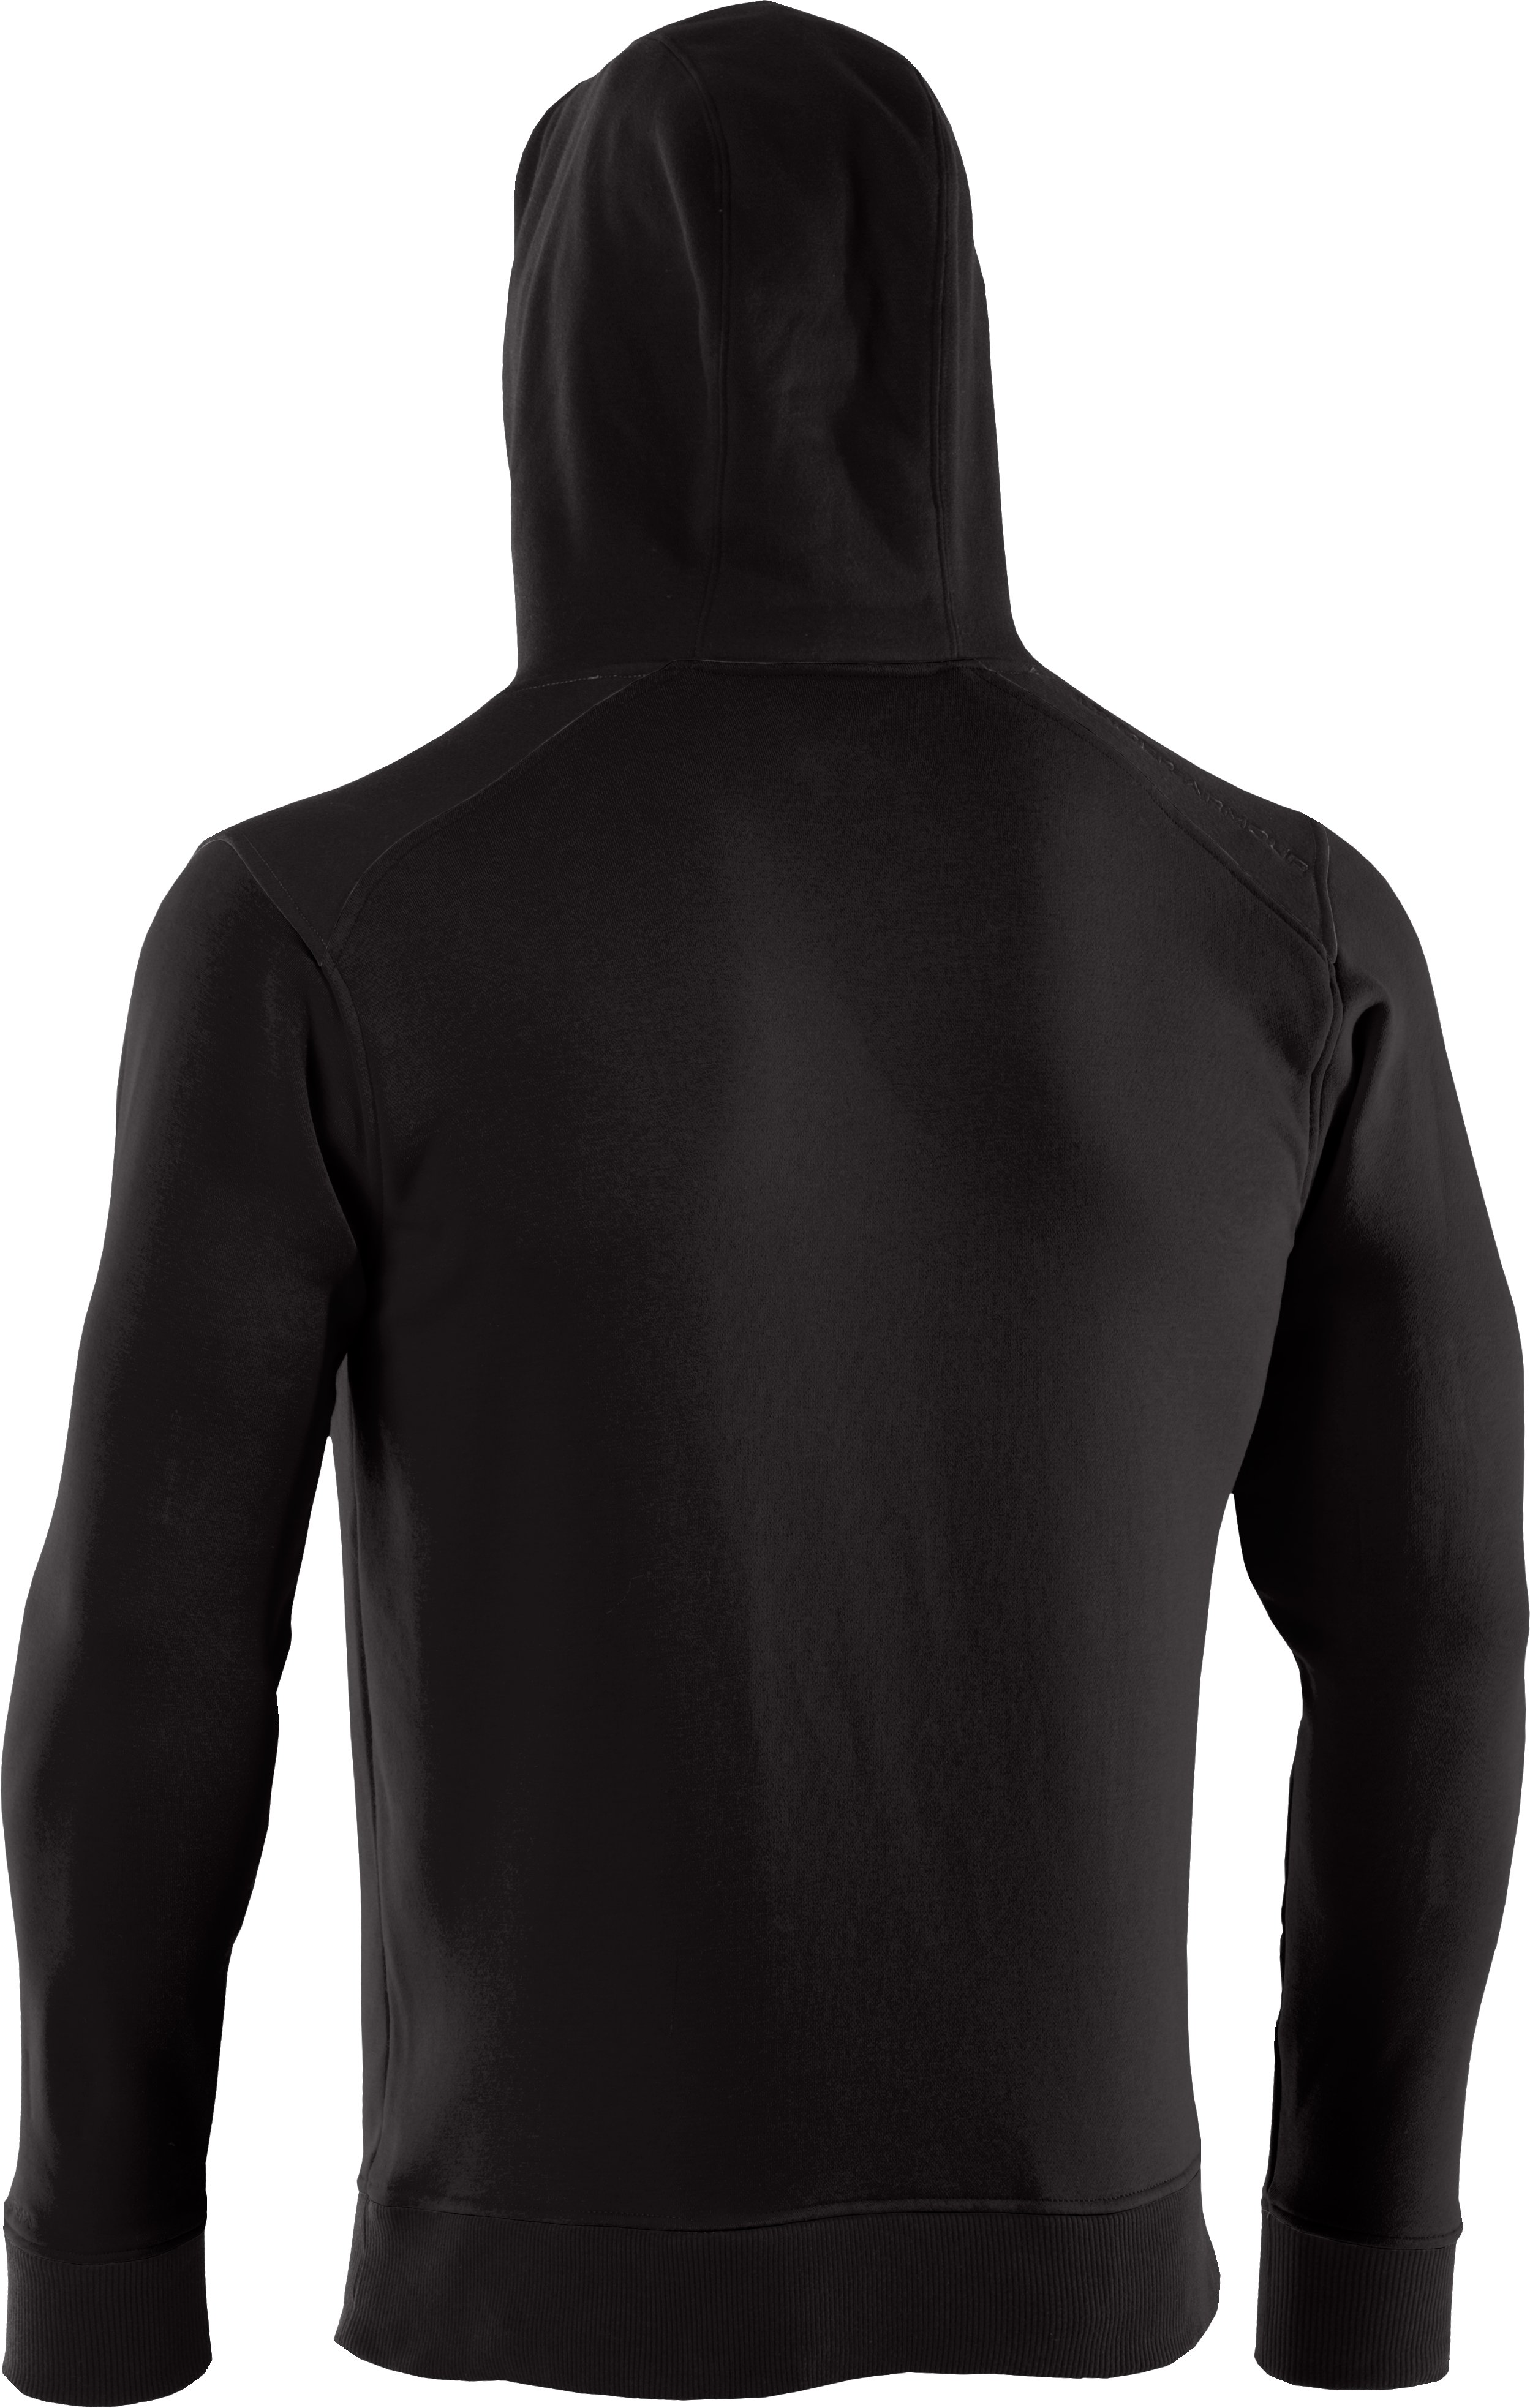 Men's Charged Cotton® Storm Hoodie, Black